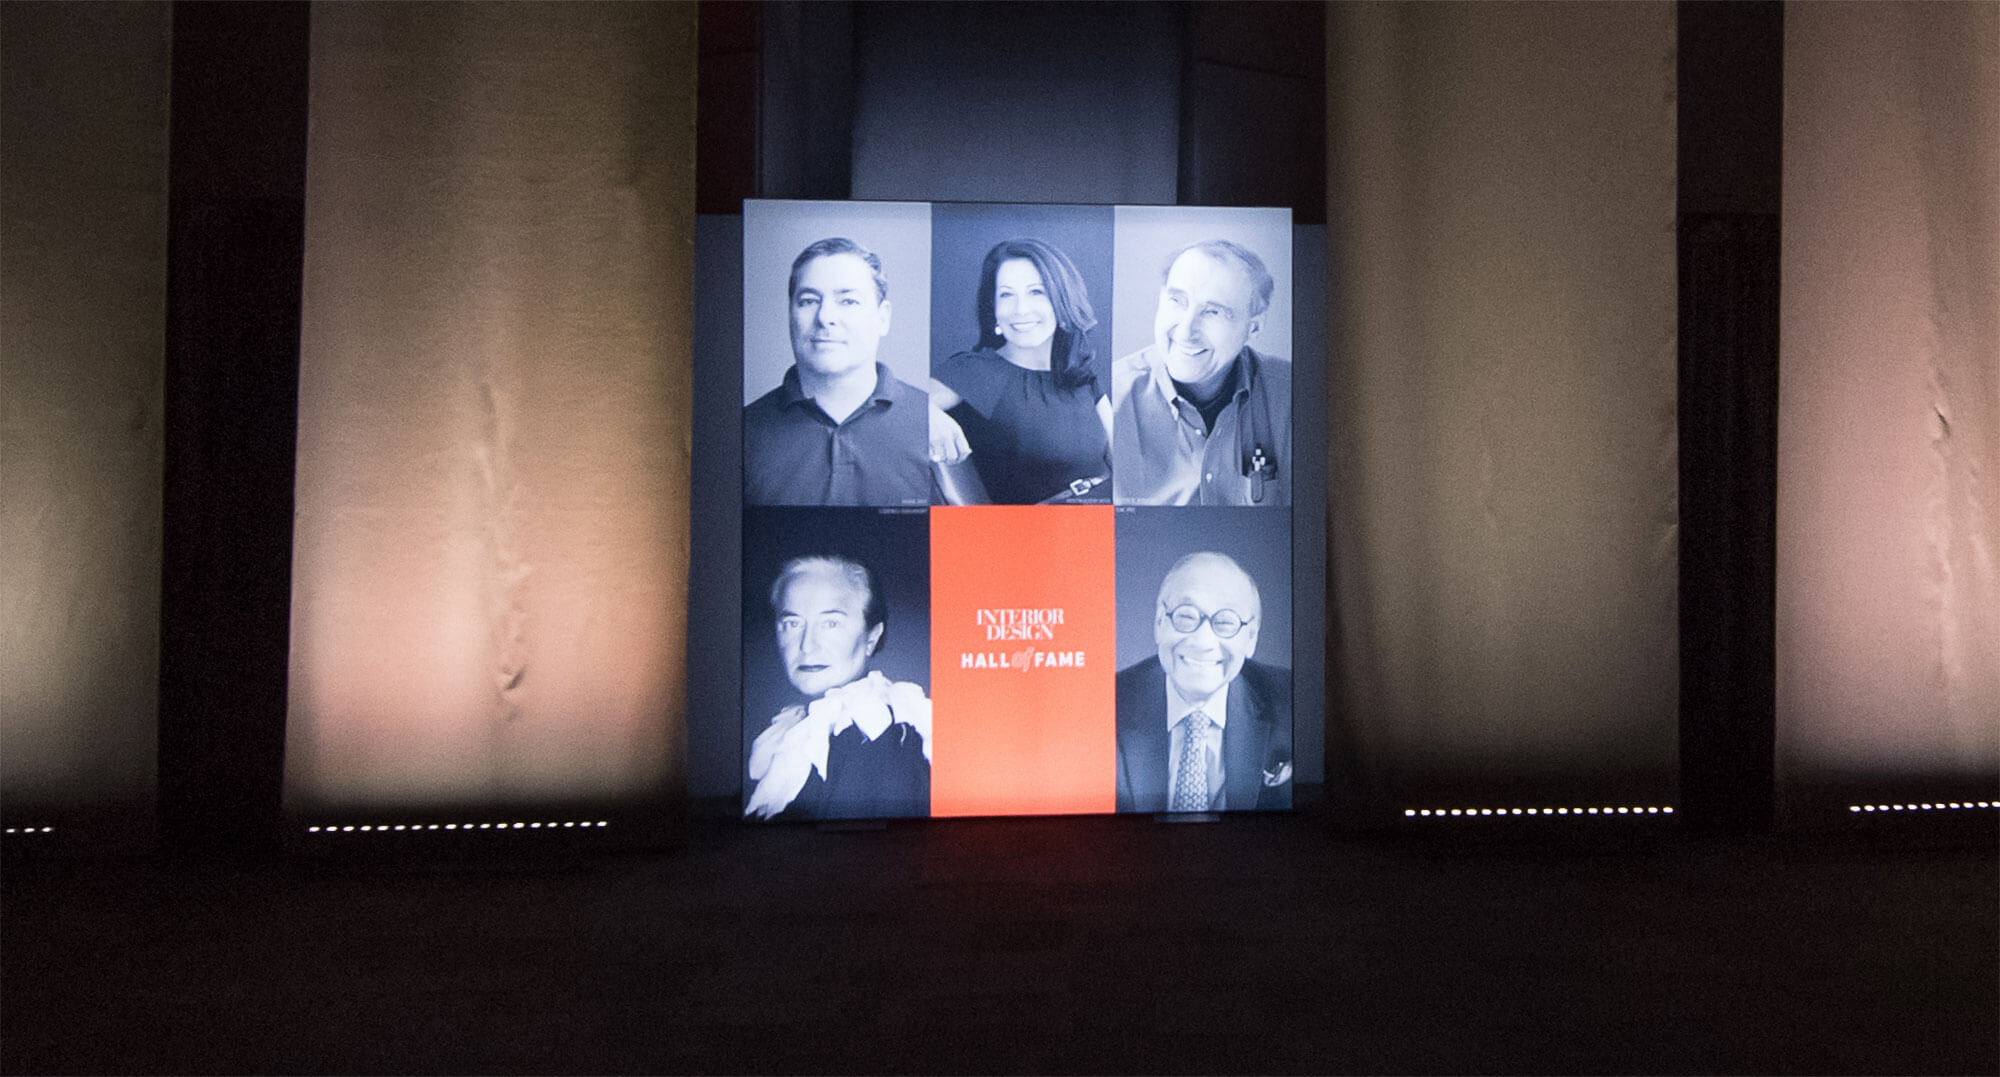 View of the presentation screen featuring Interior Design's Hall of Fame inductees.